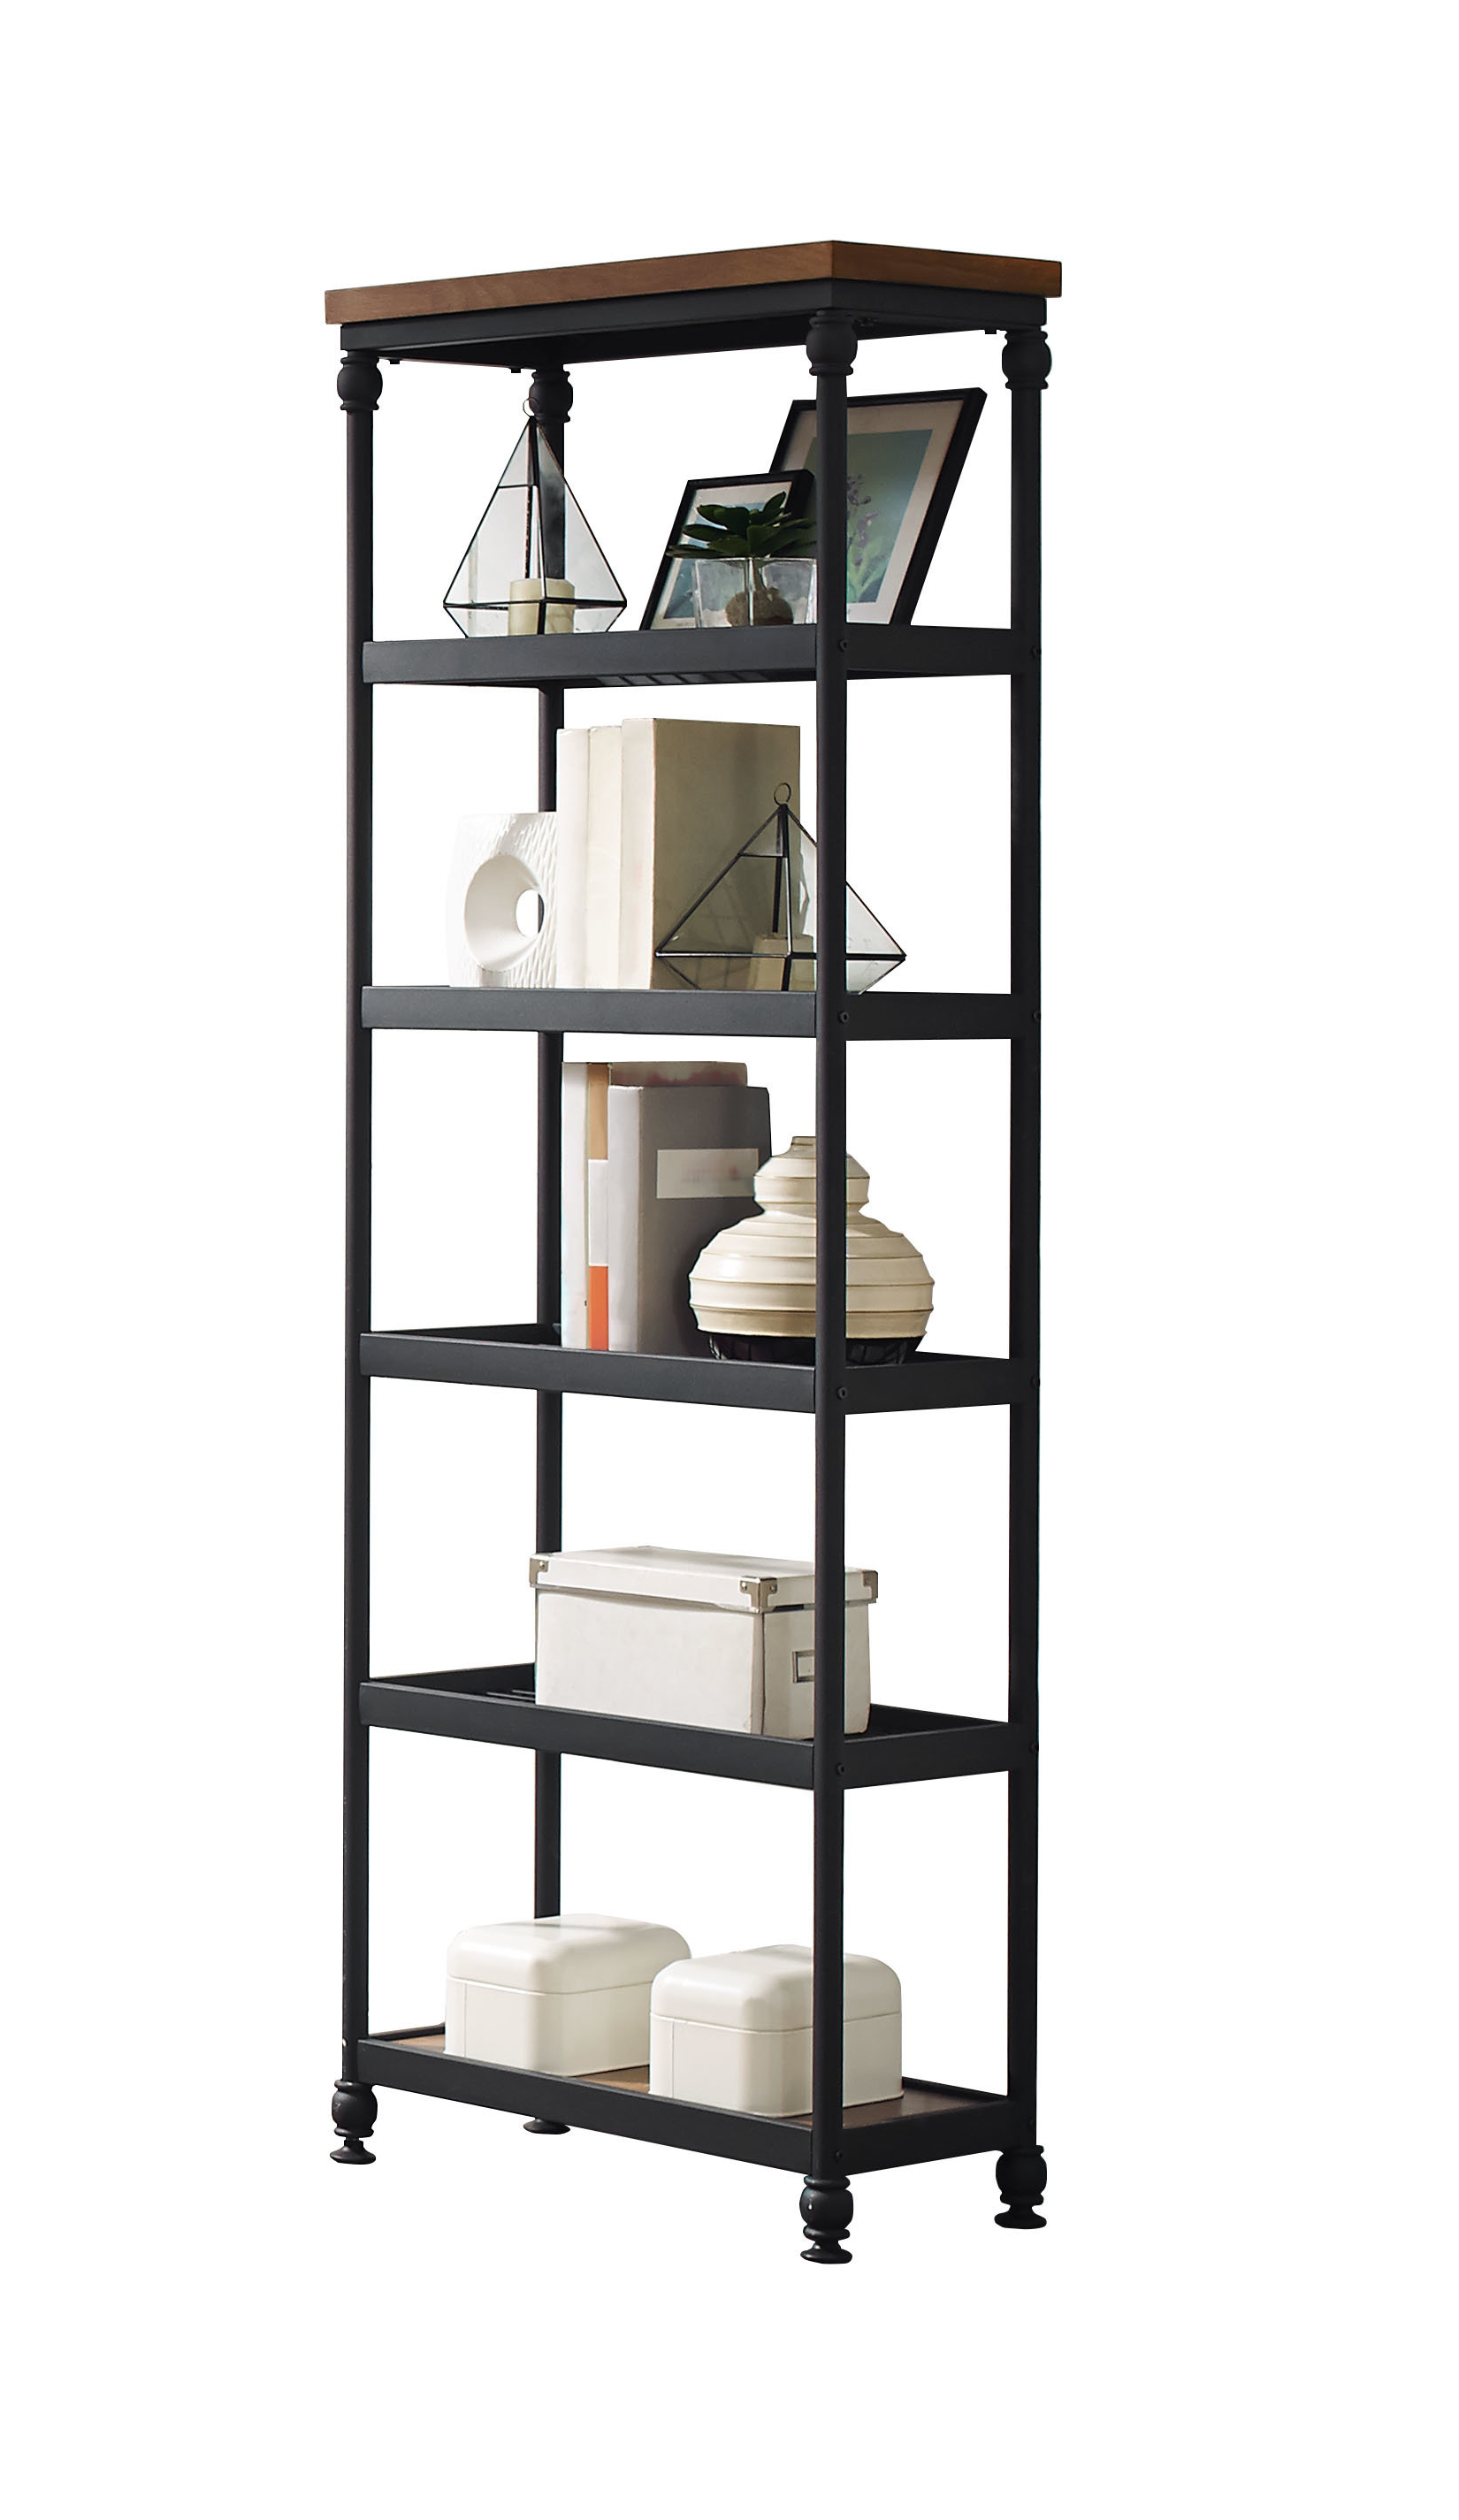 Caldwell Etagere Bookcases Pertaining To Most Up To Date Hogans Etagere Bookcase (View 10 of 20)